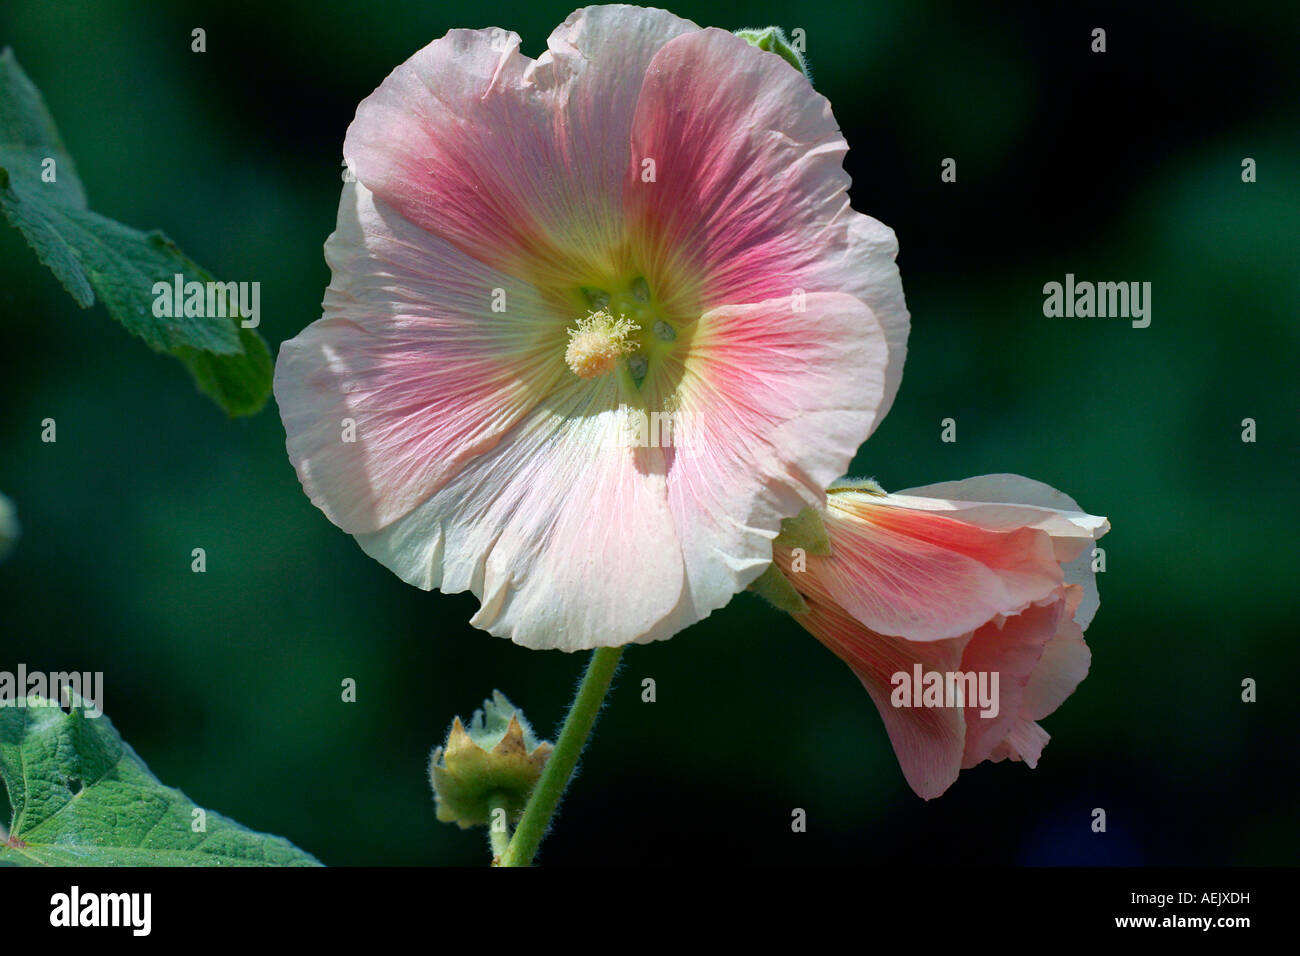 Flowering Hollyhock (Alcea rosea) Stock Photo